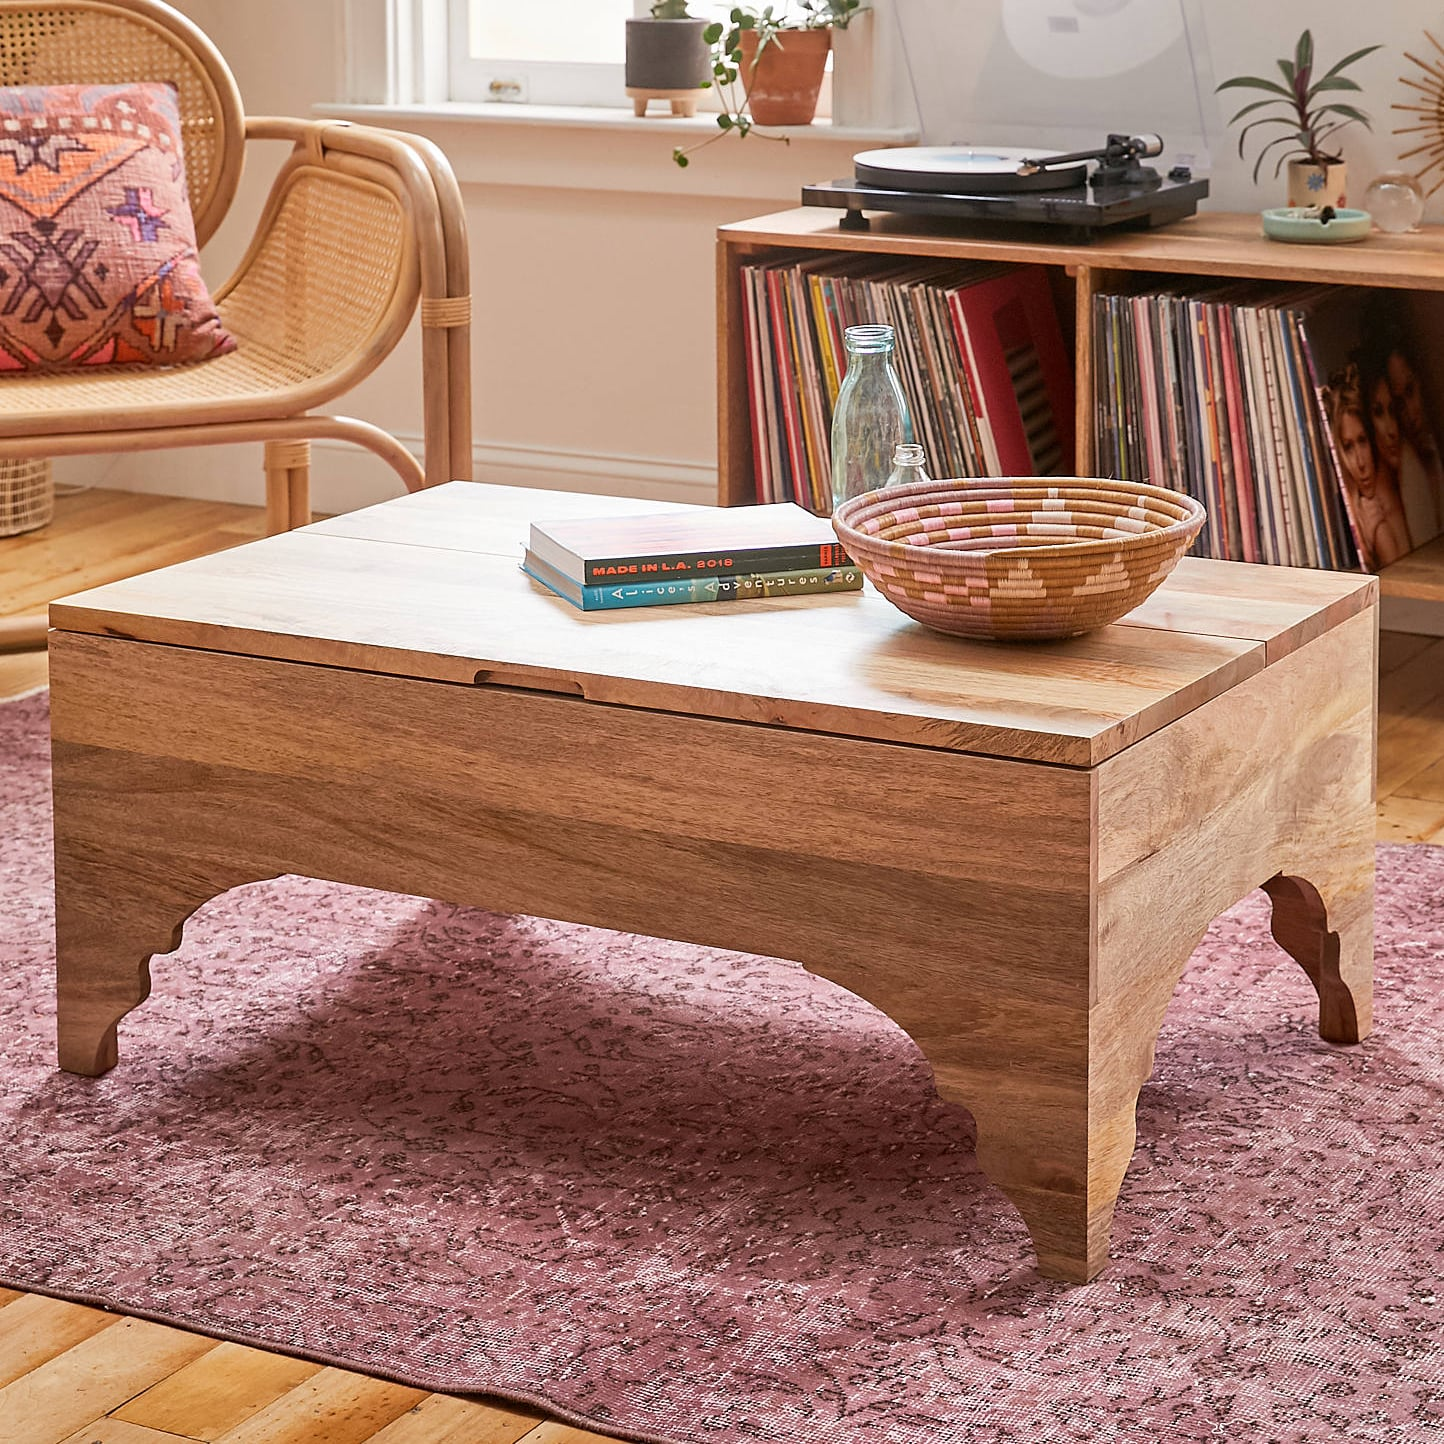 Best Space Saving Furniture From Urban Outfitters Popsugar